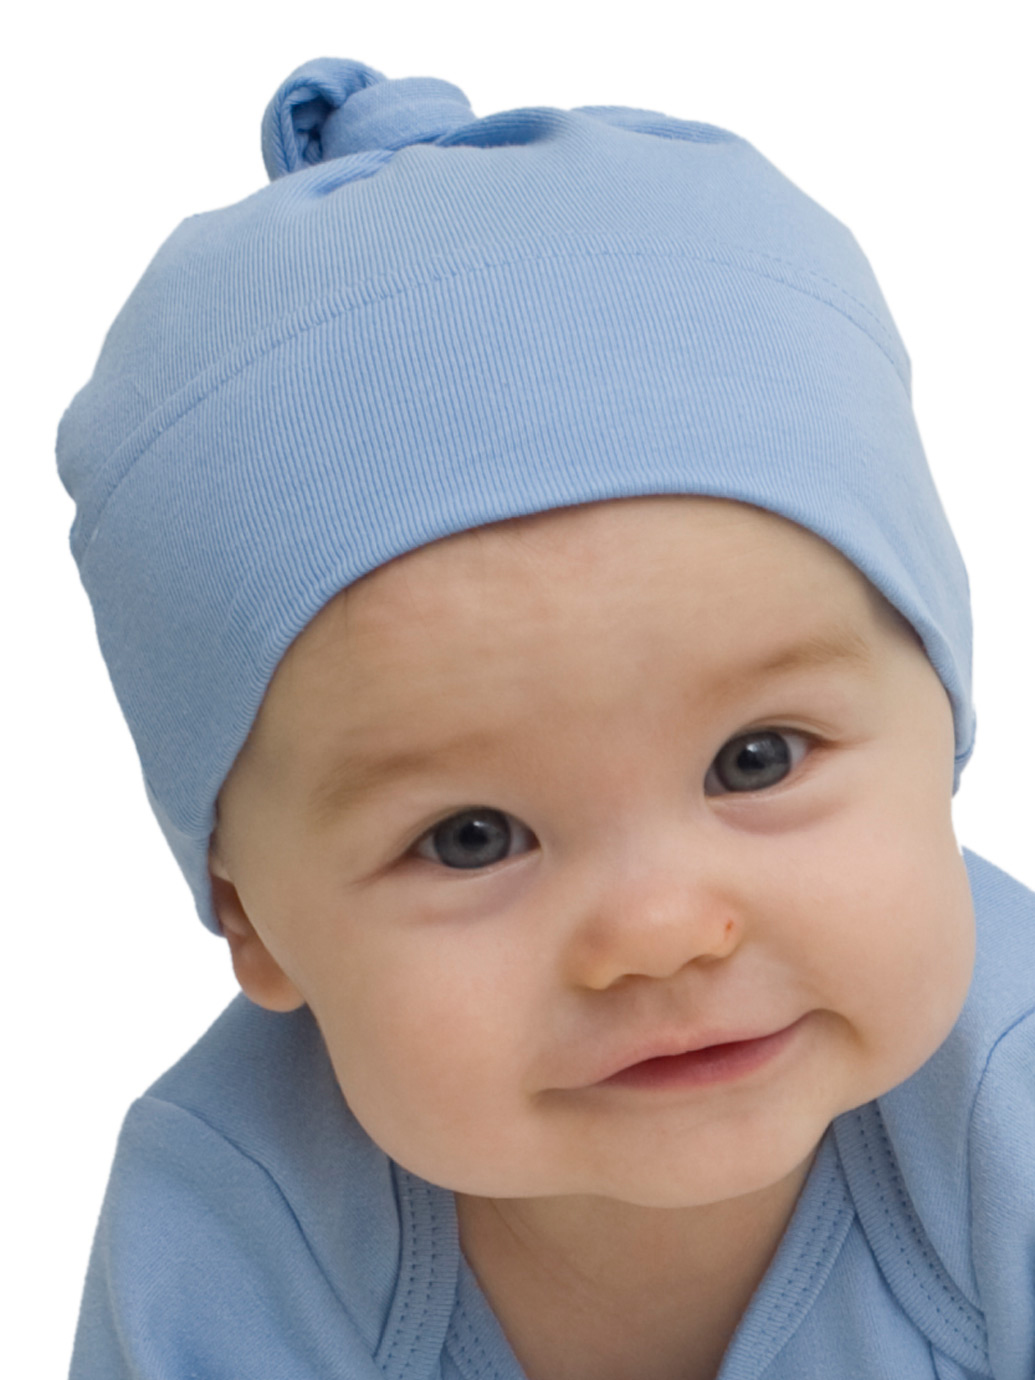 American Apparel 4009 - Infant Baby Rib Hat